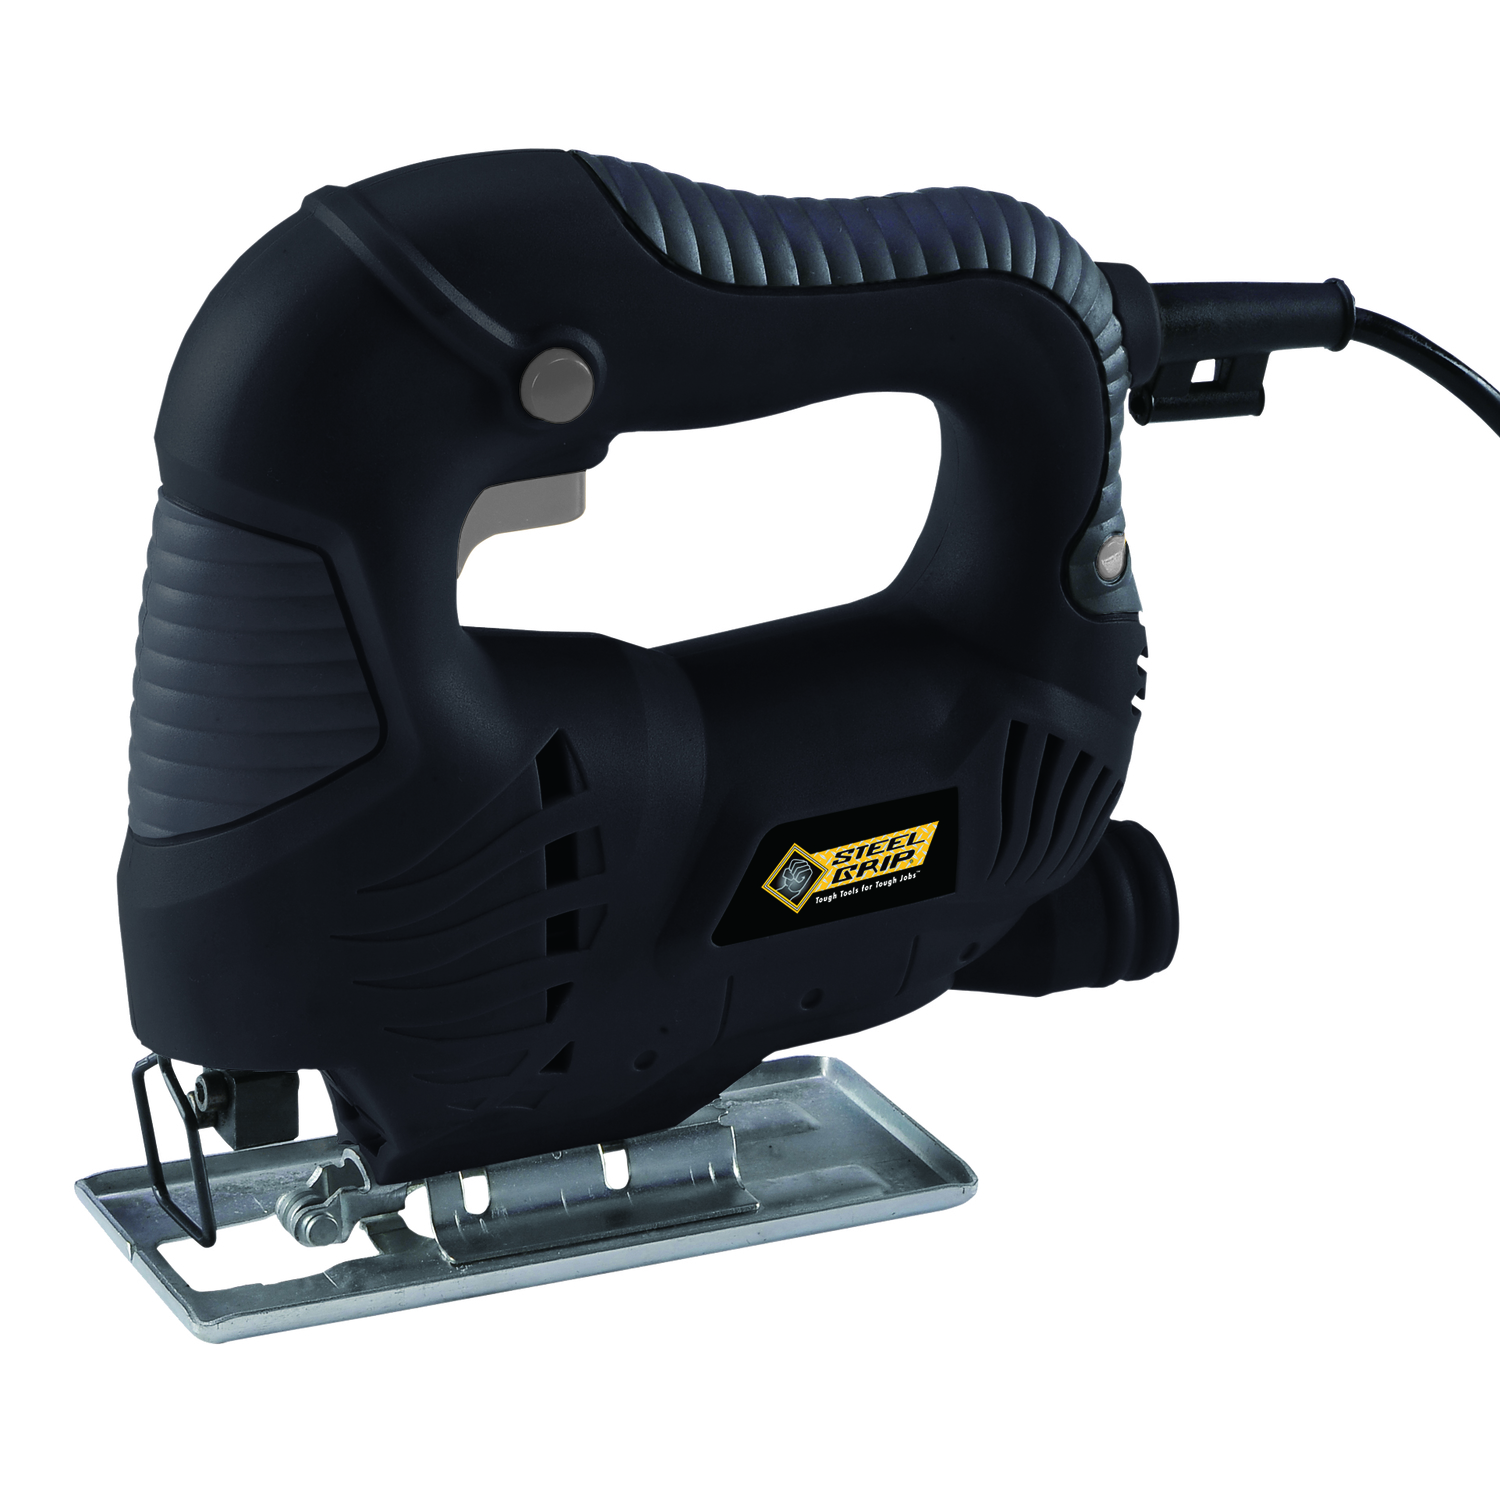 Steel Grip  2-1/4 in. Corded  Jig Saw  3000 spm 0.75 amps